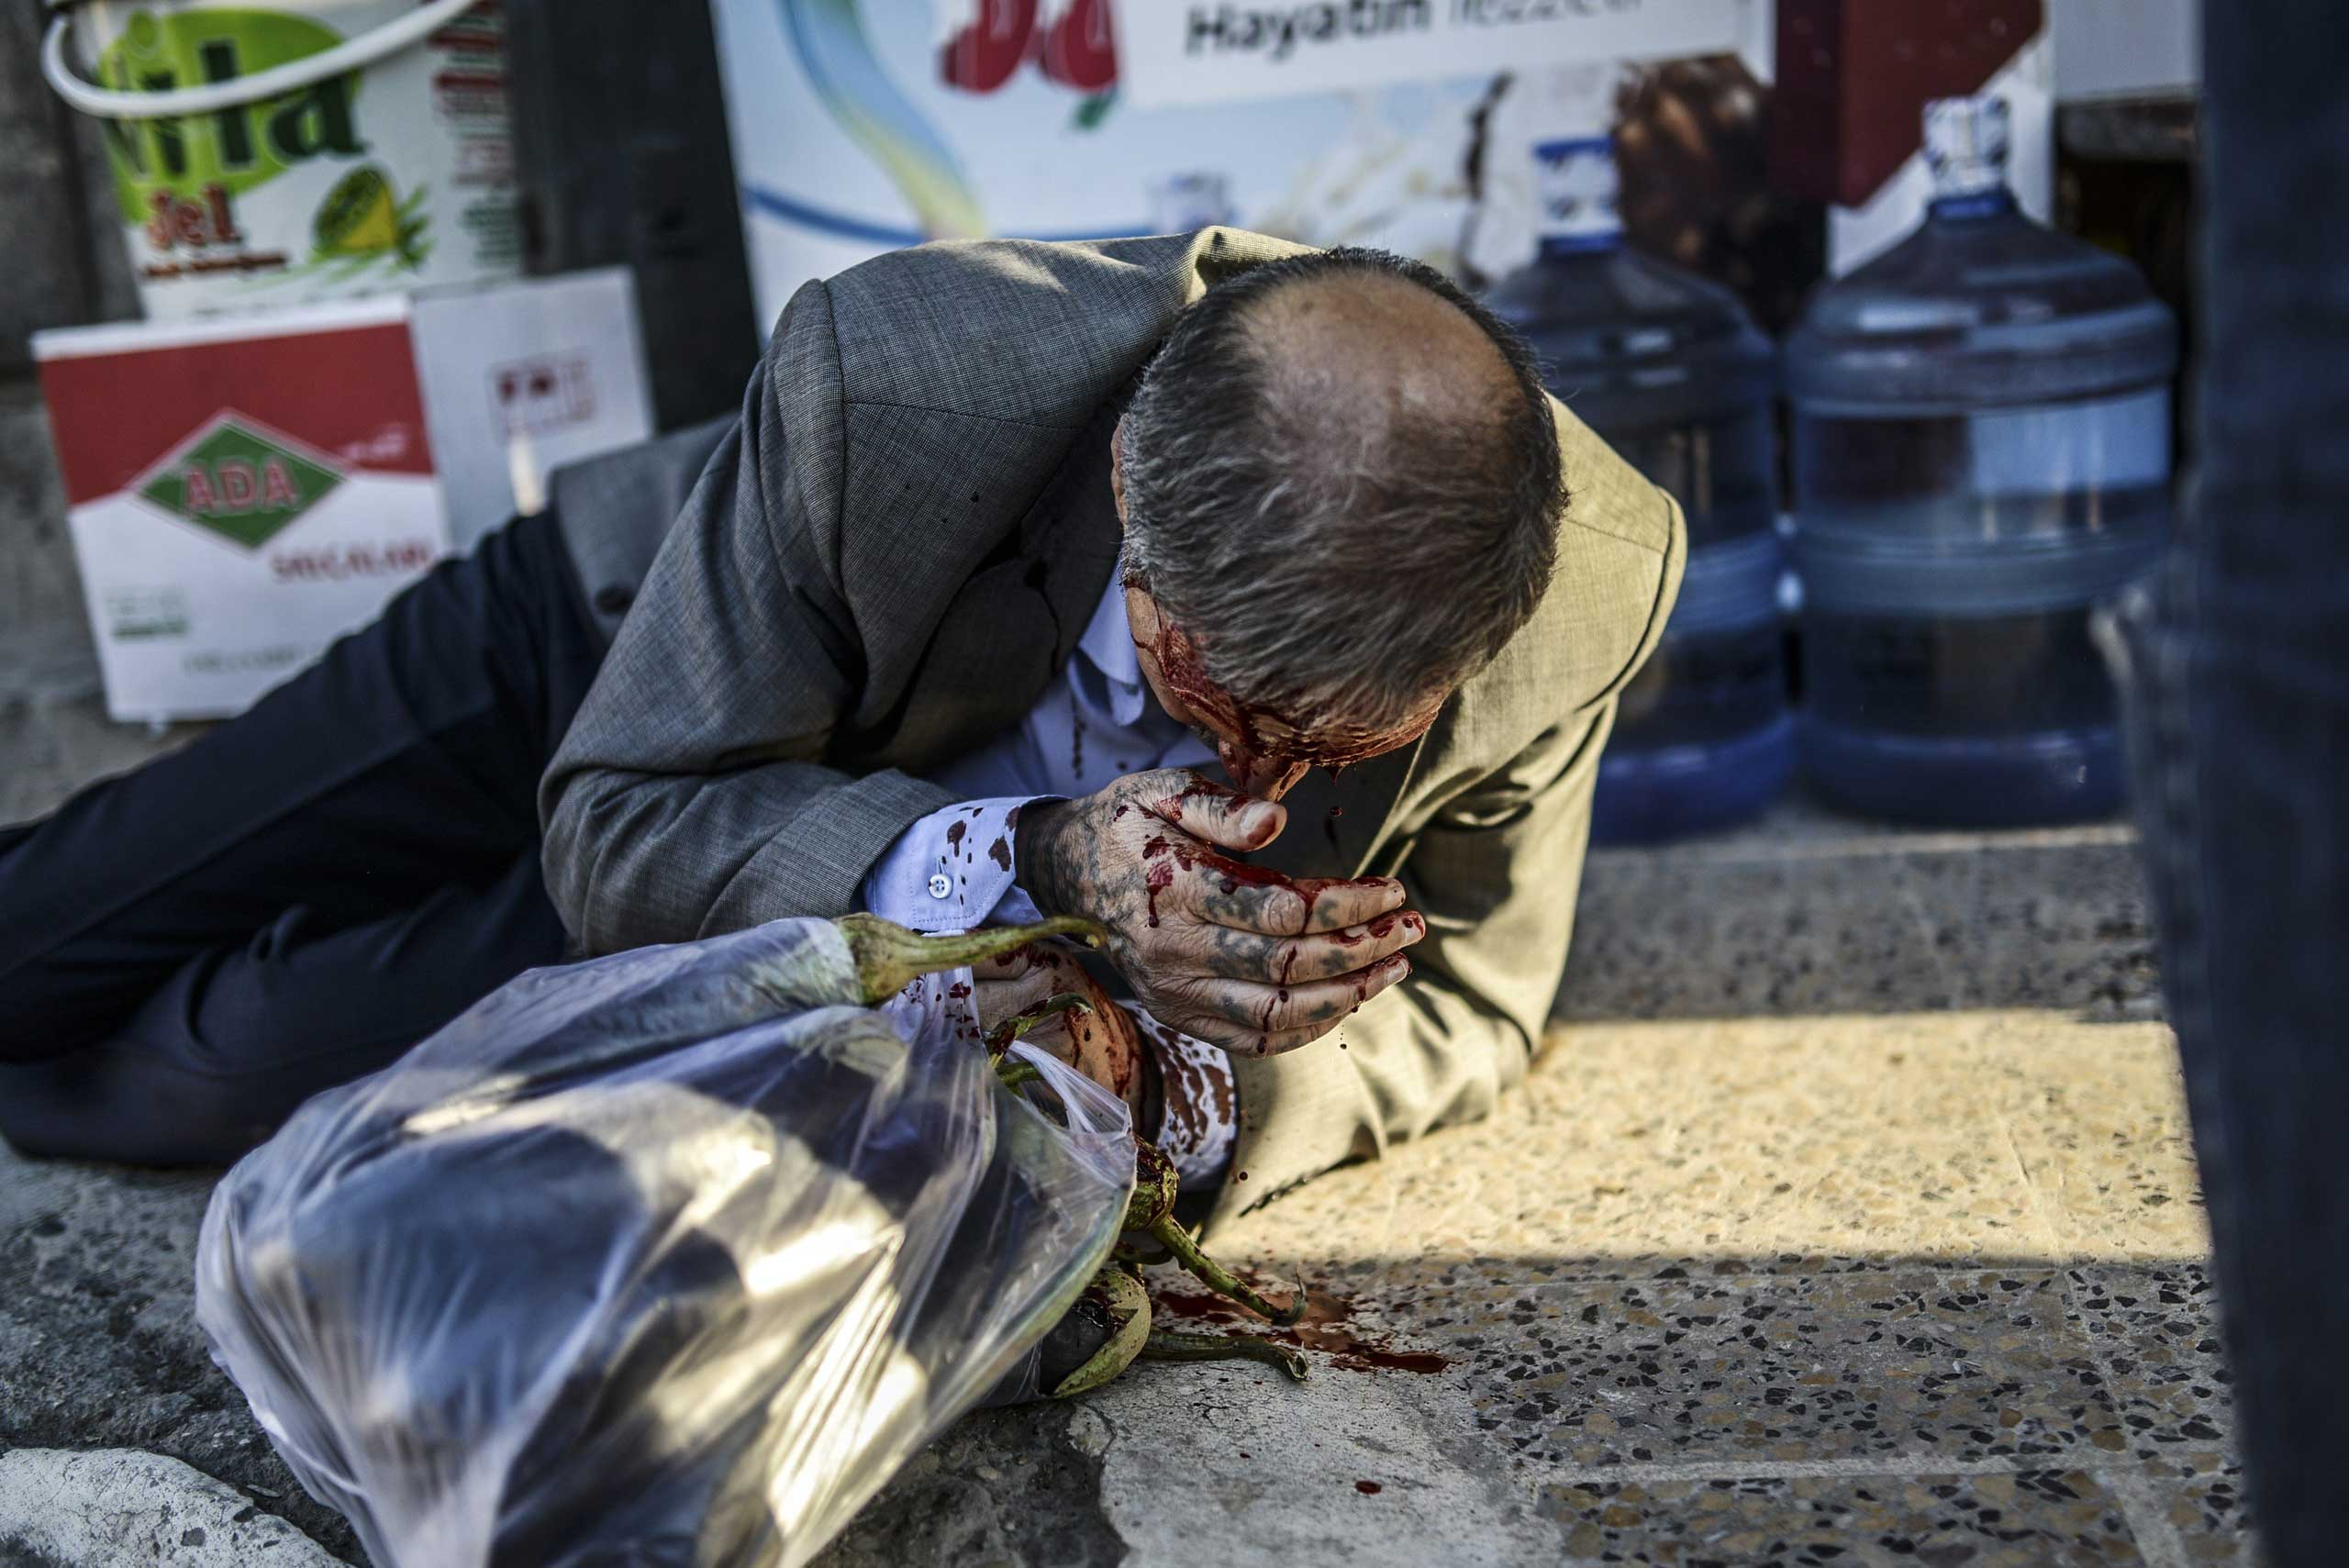 A Kurdish man bleeds after being injured while walking in the center of Suruc during clashes between protestors and Turkish riot policemen after authorities temporarily closed the border at the southeastern town of Suruc in Sanliurfa province, on Sept.  22, 2014.